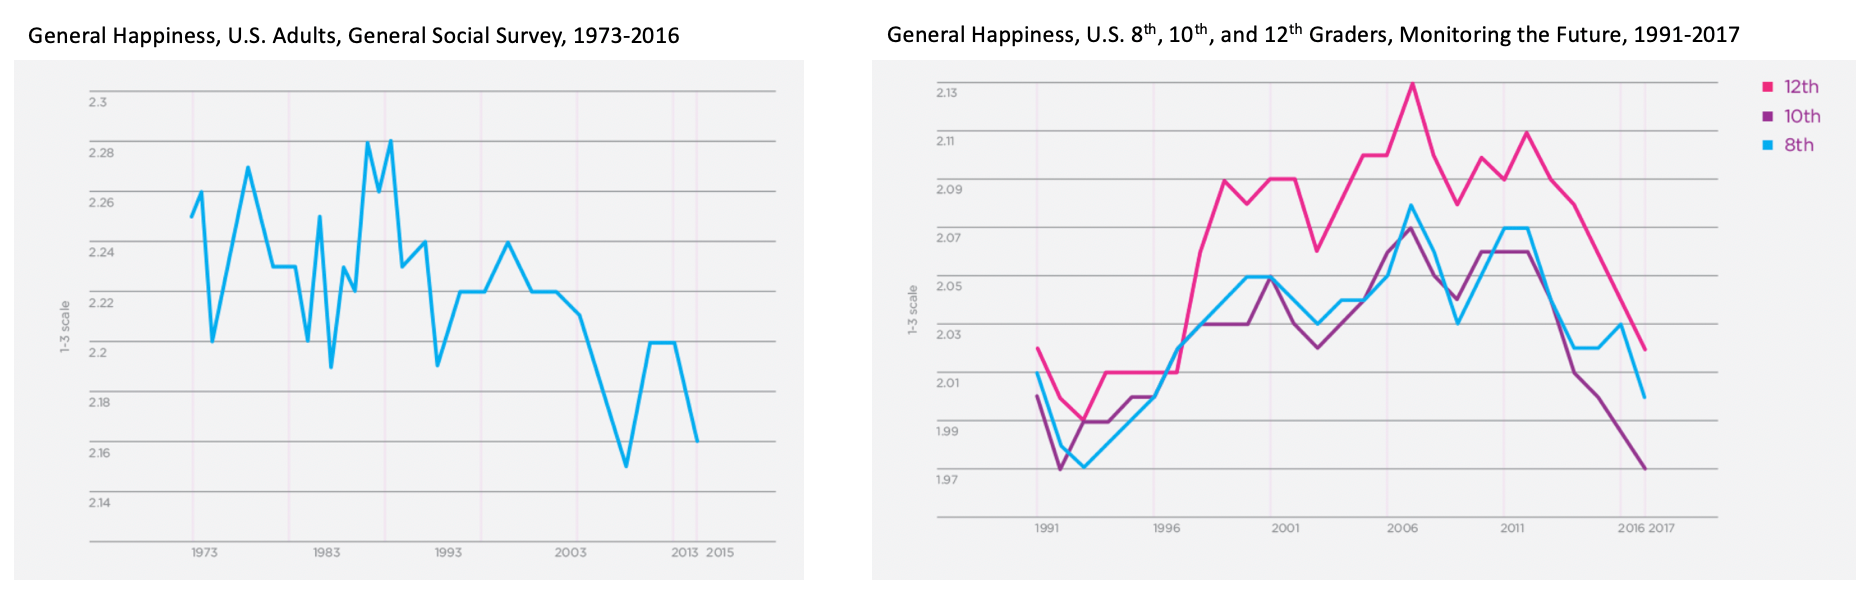 Source: Jean M. Twenge,  The Sad State of Happiness in the United States and the Role of Digital Media,   World Happiness Report